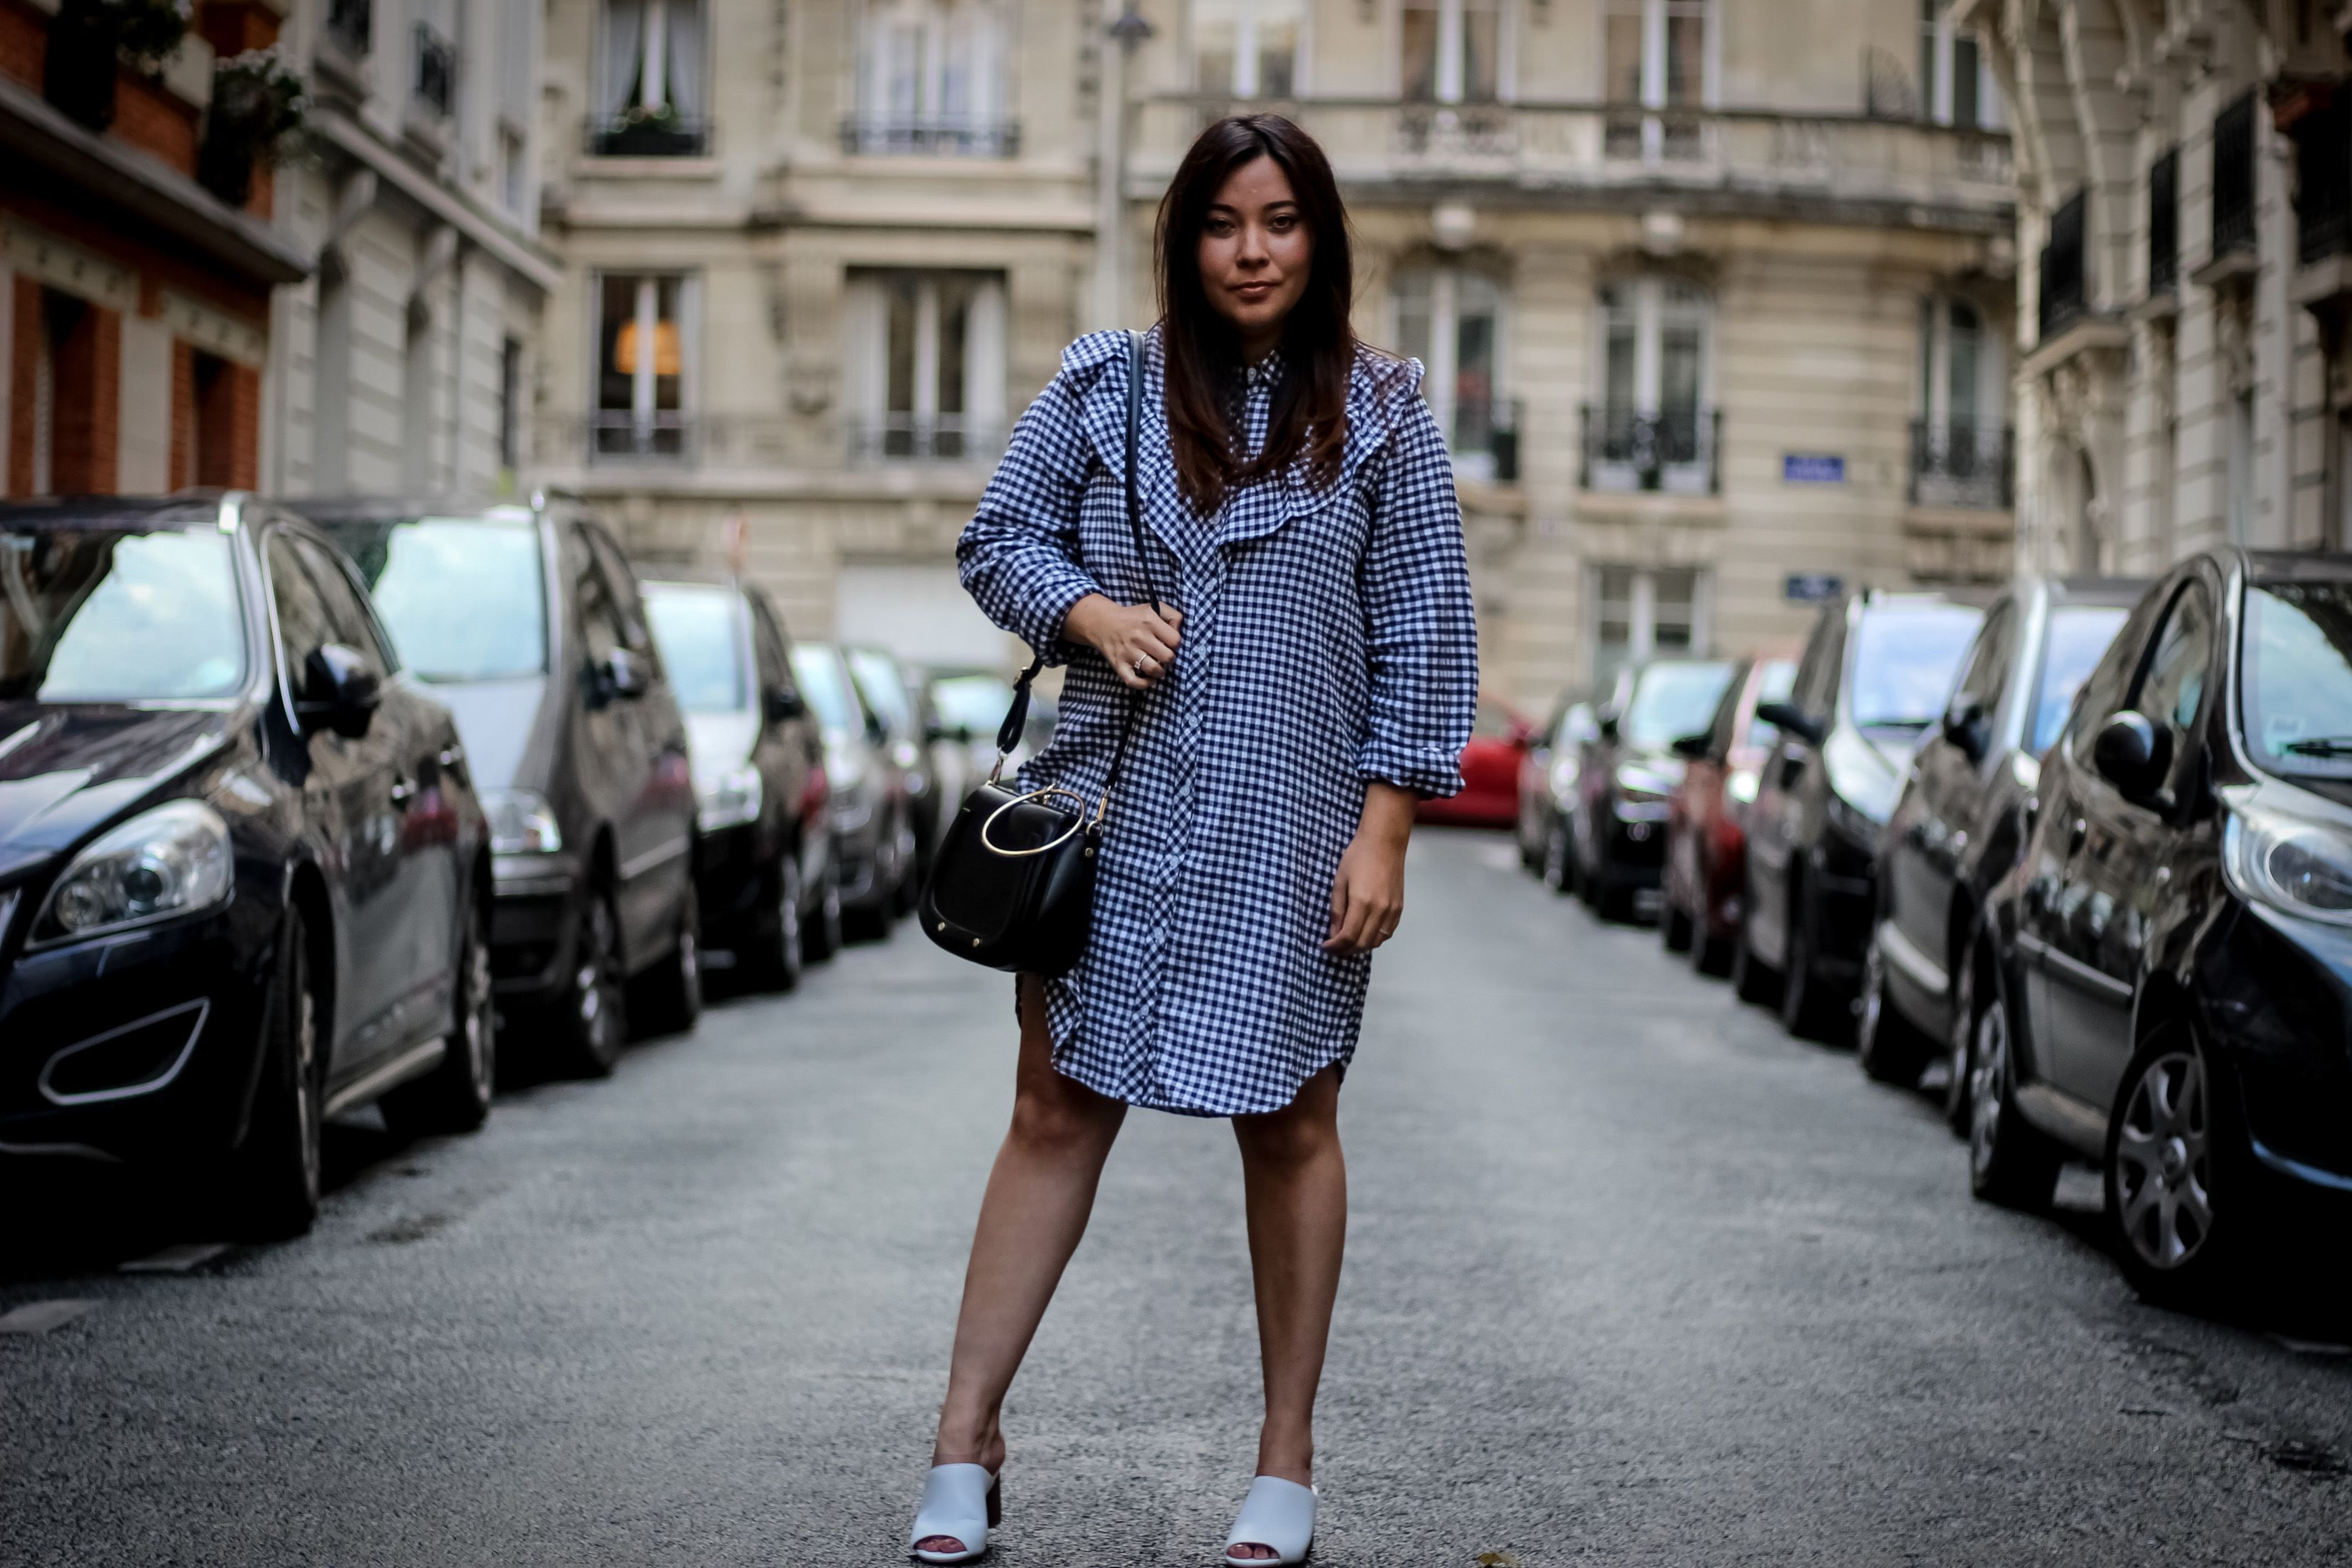 robe vichy, new look, sac inspi chloé, mules blanches, mules, the green ananas, blog mode, blogueuse mode, la la land